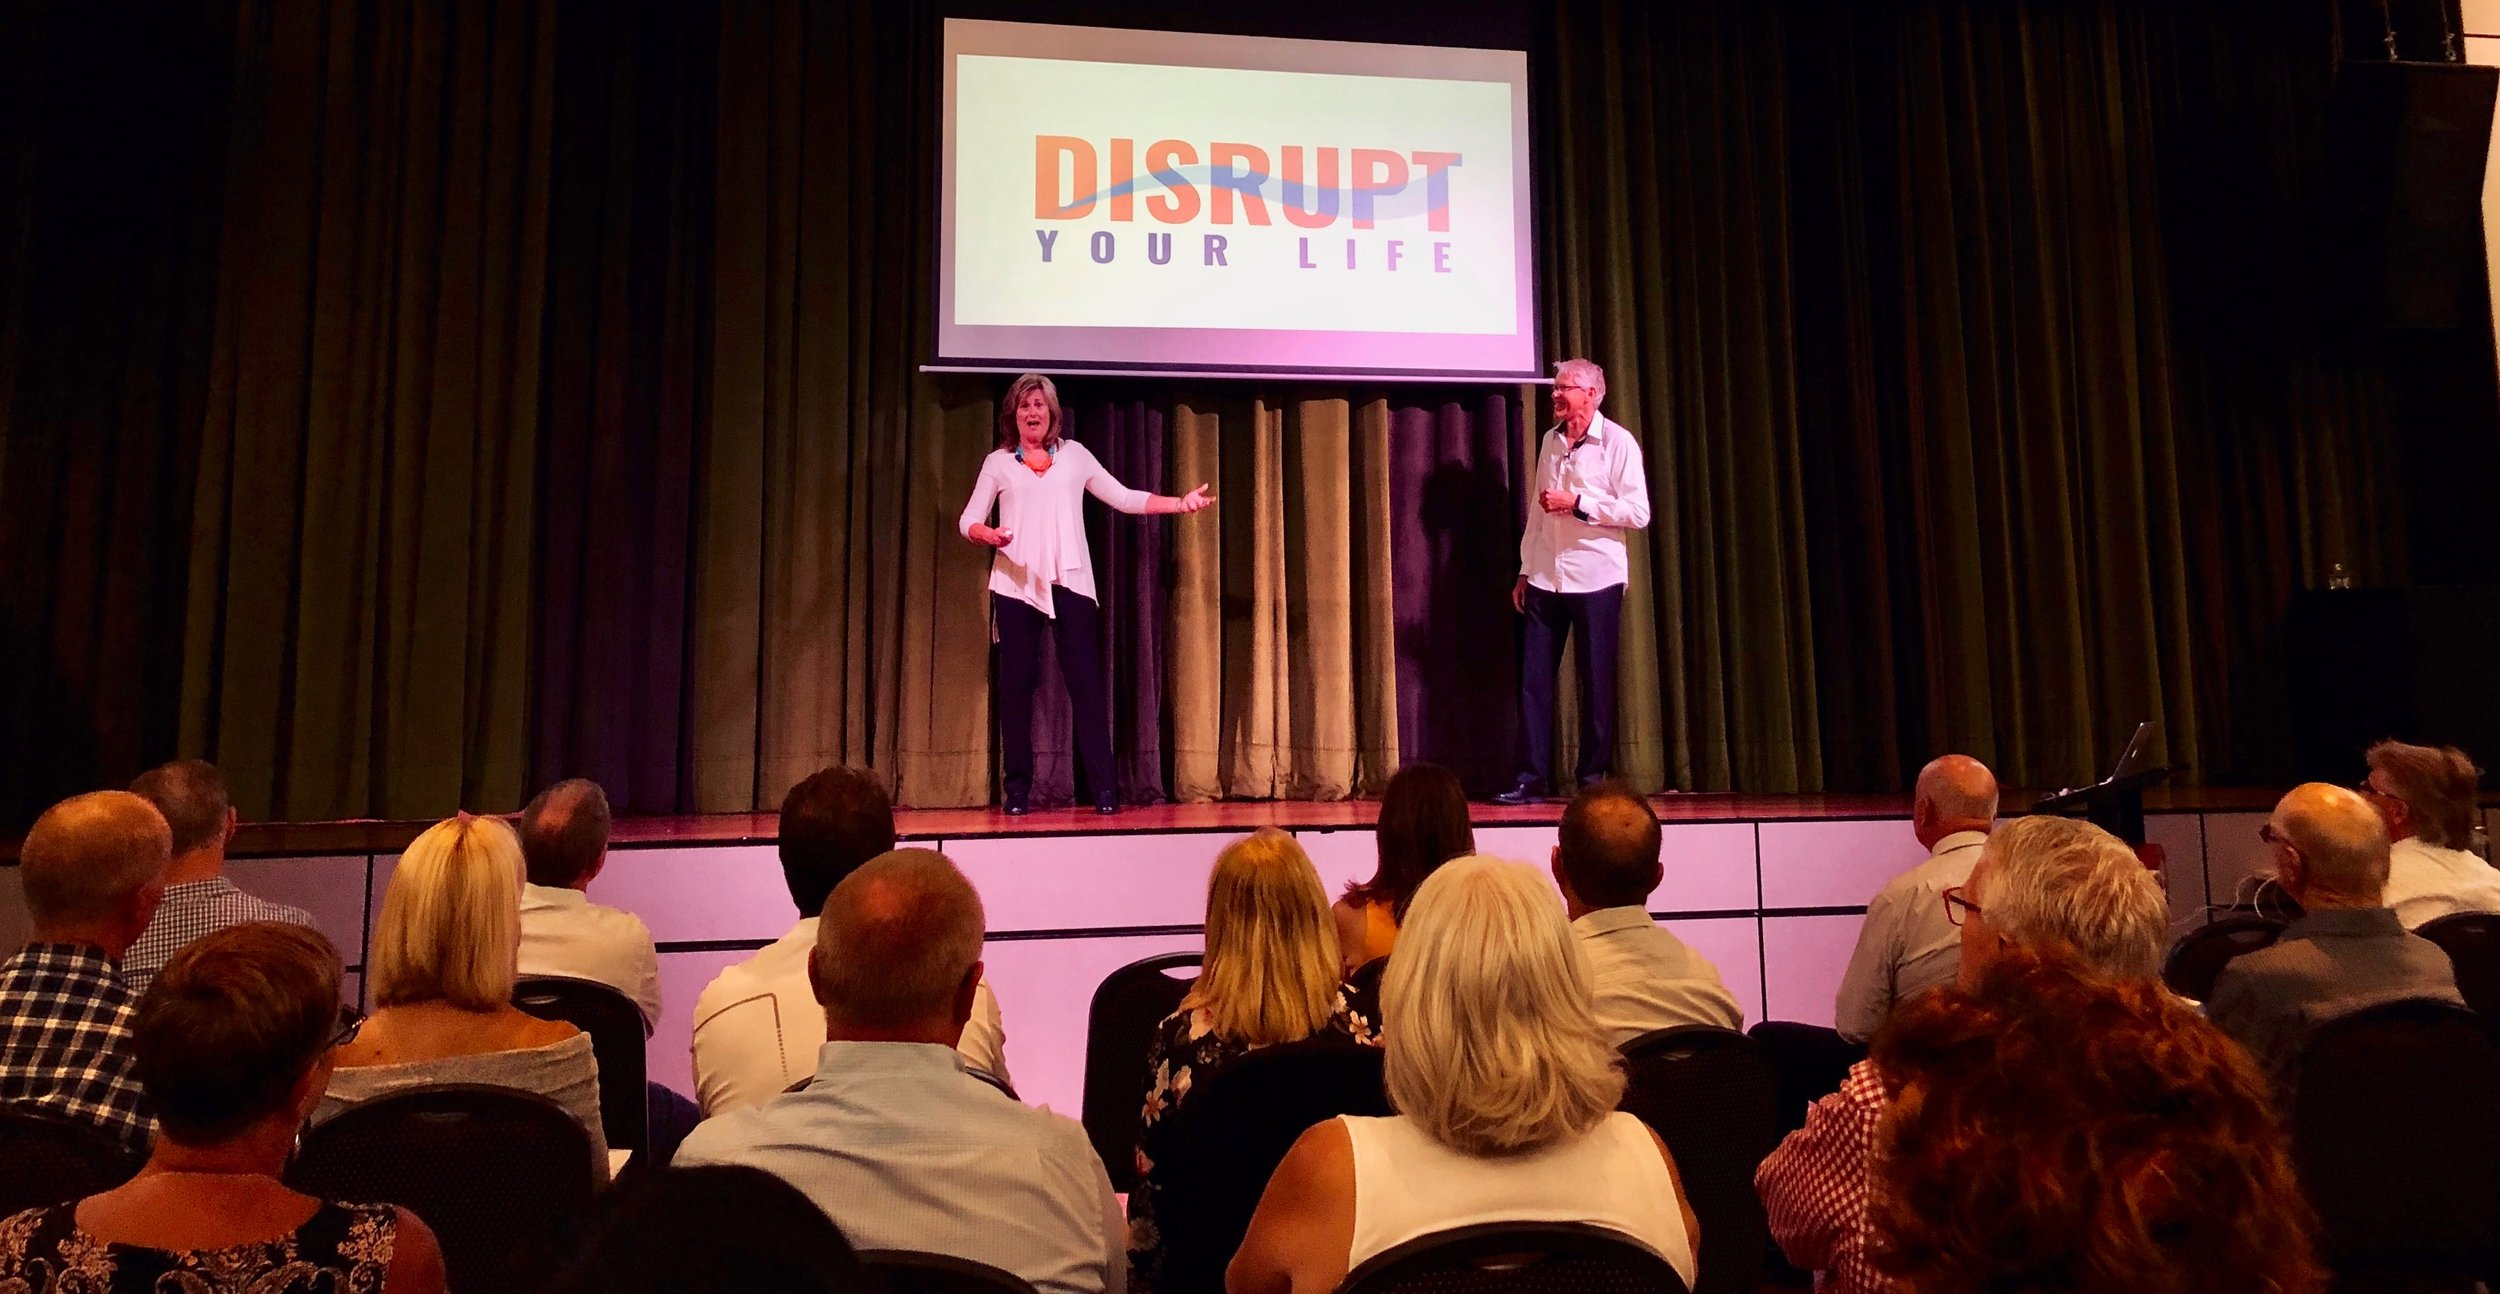 Disrupt Your Life is a compelling presentation for your audience